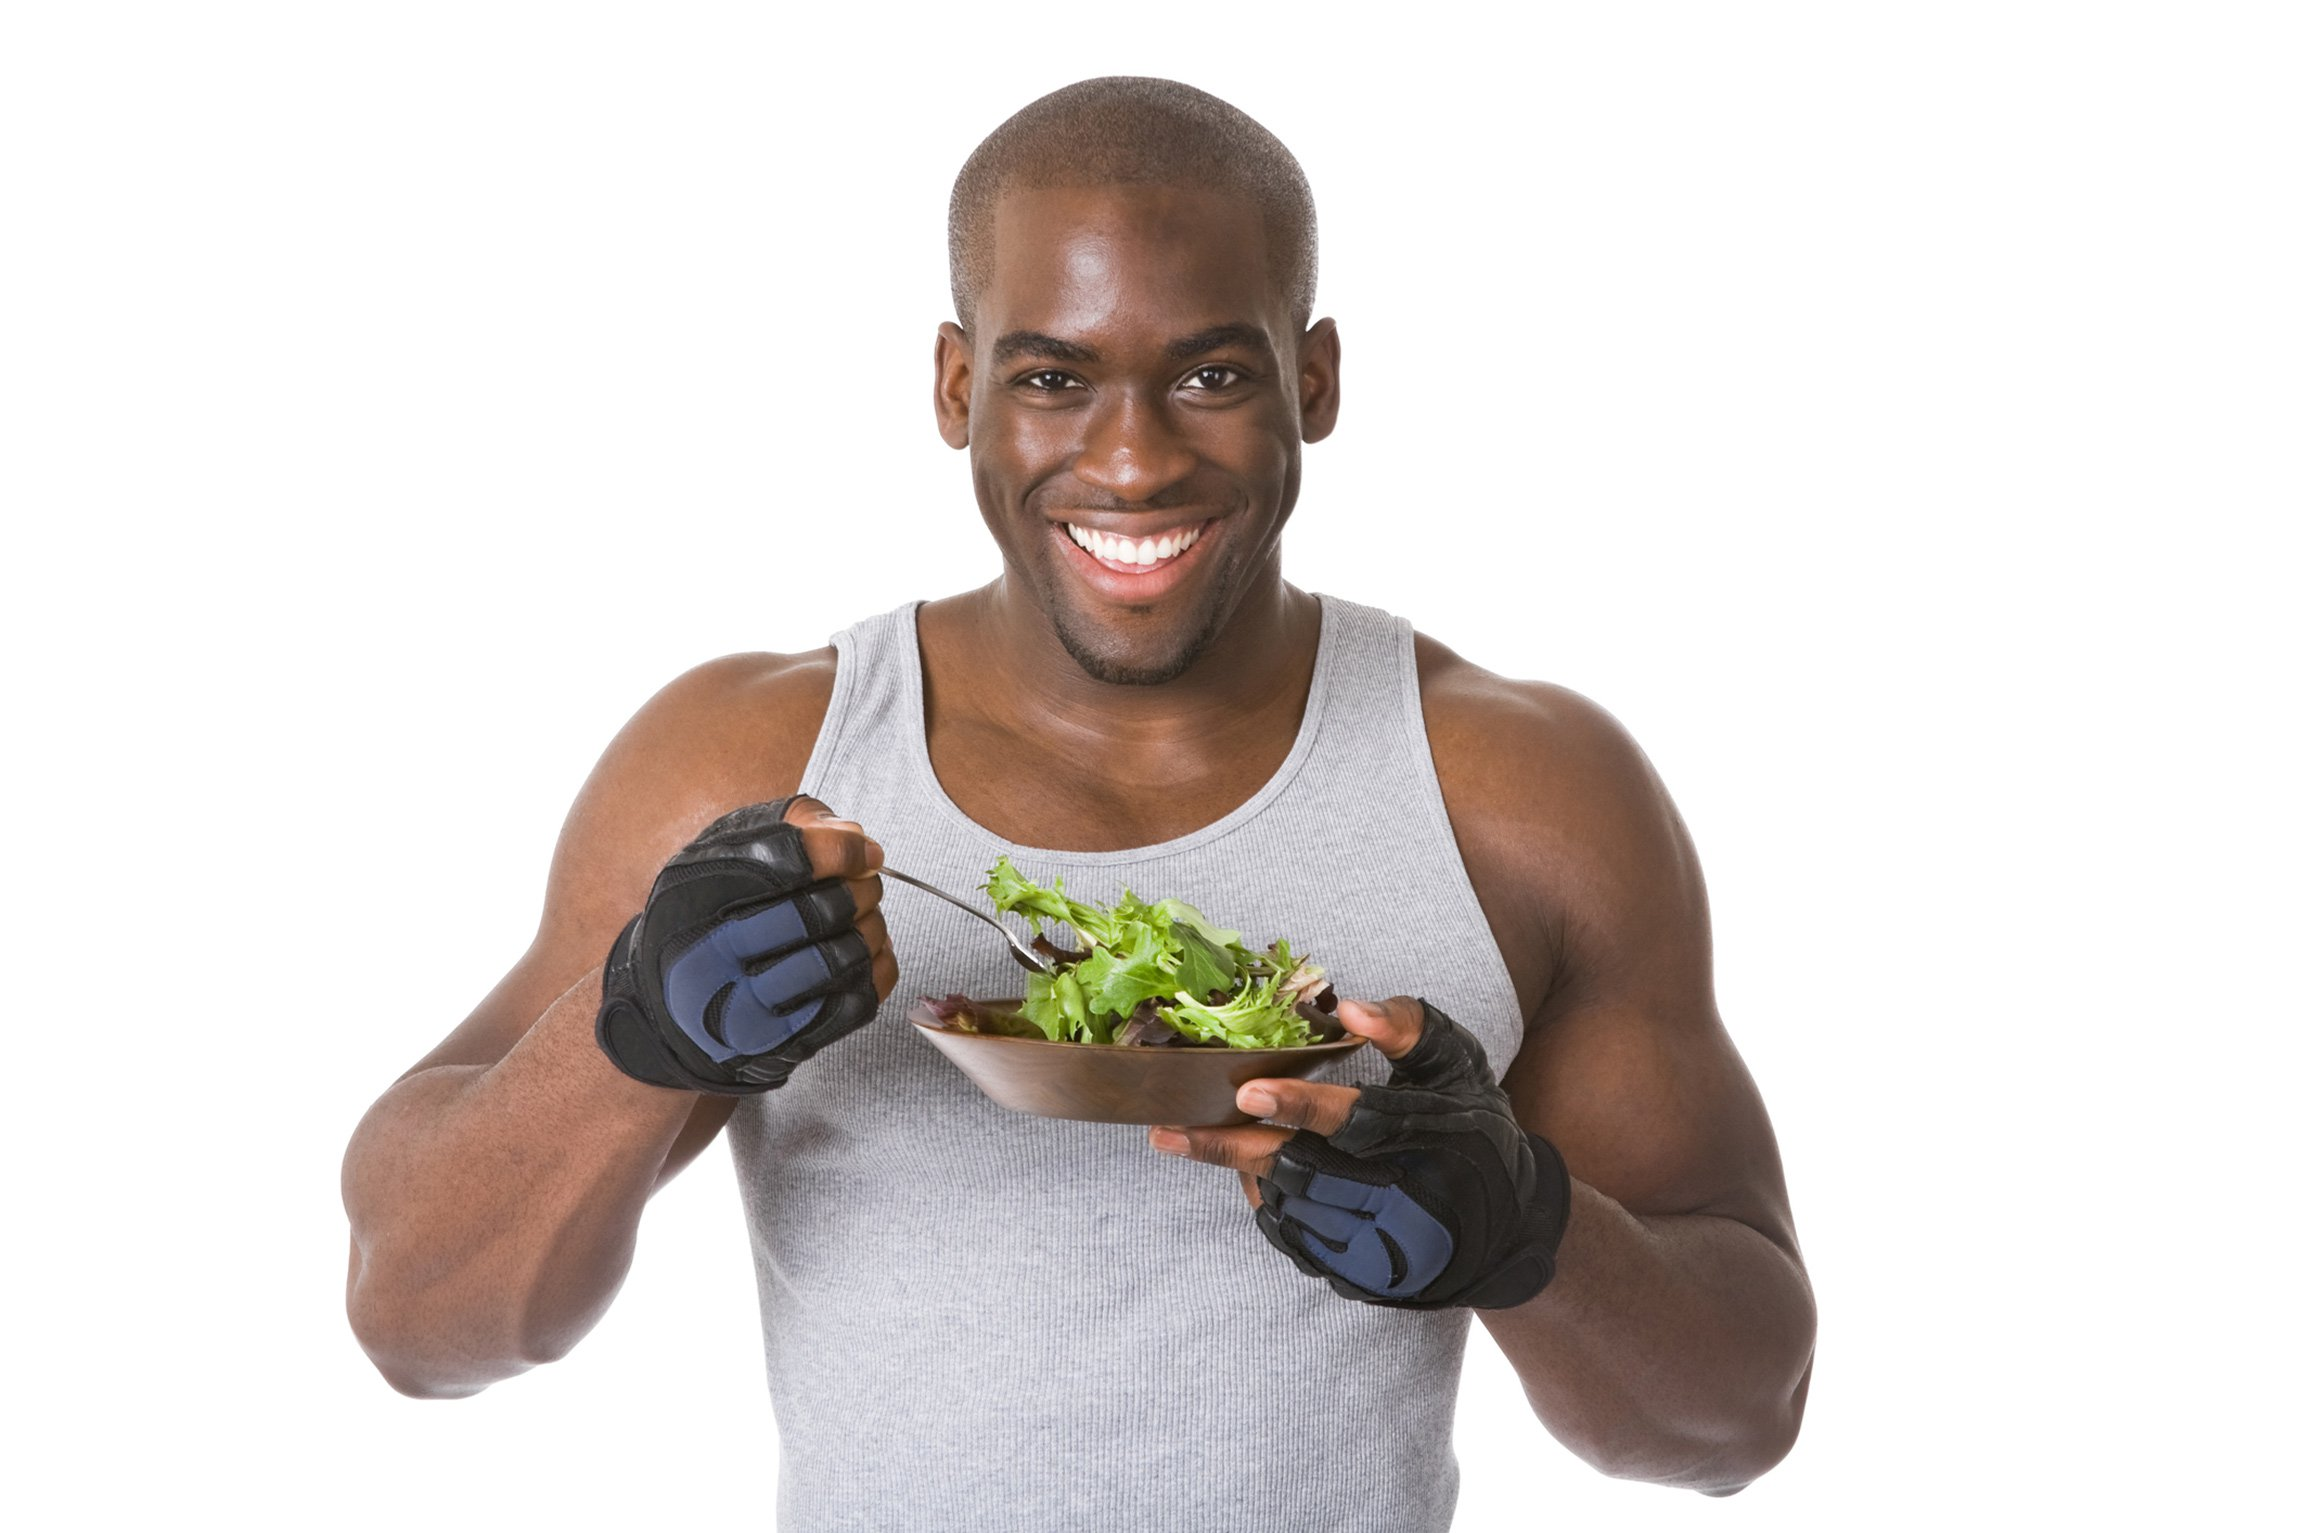 body builder eating broccoli